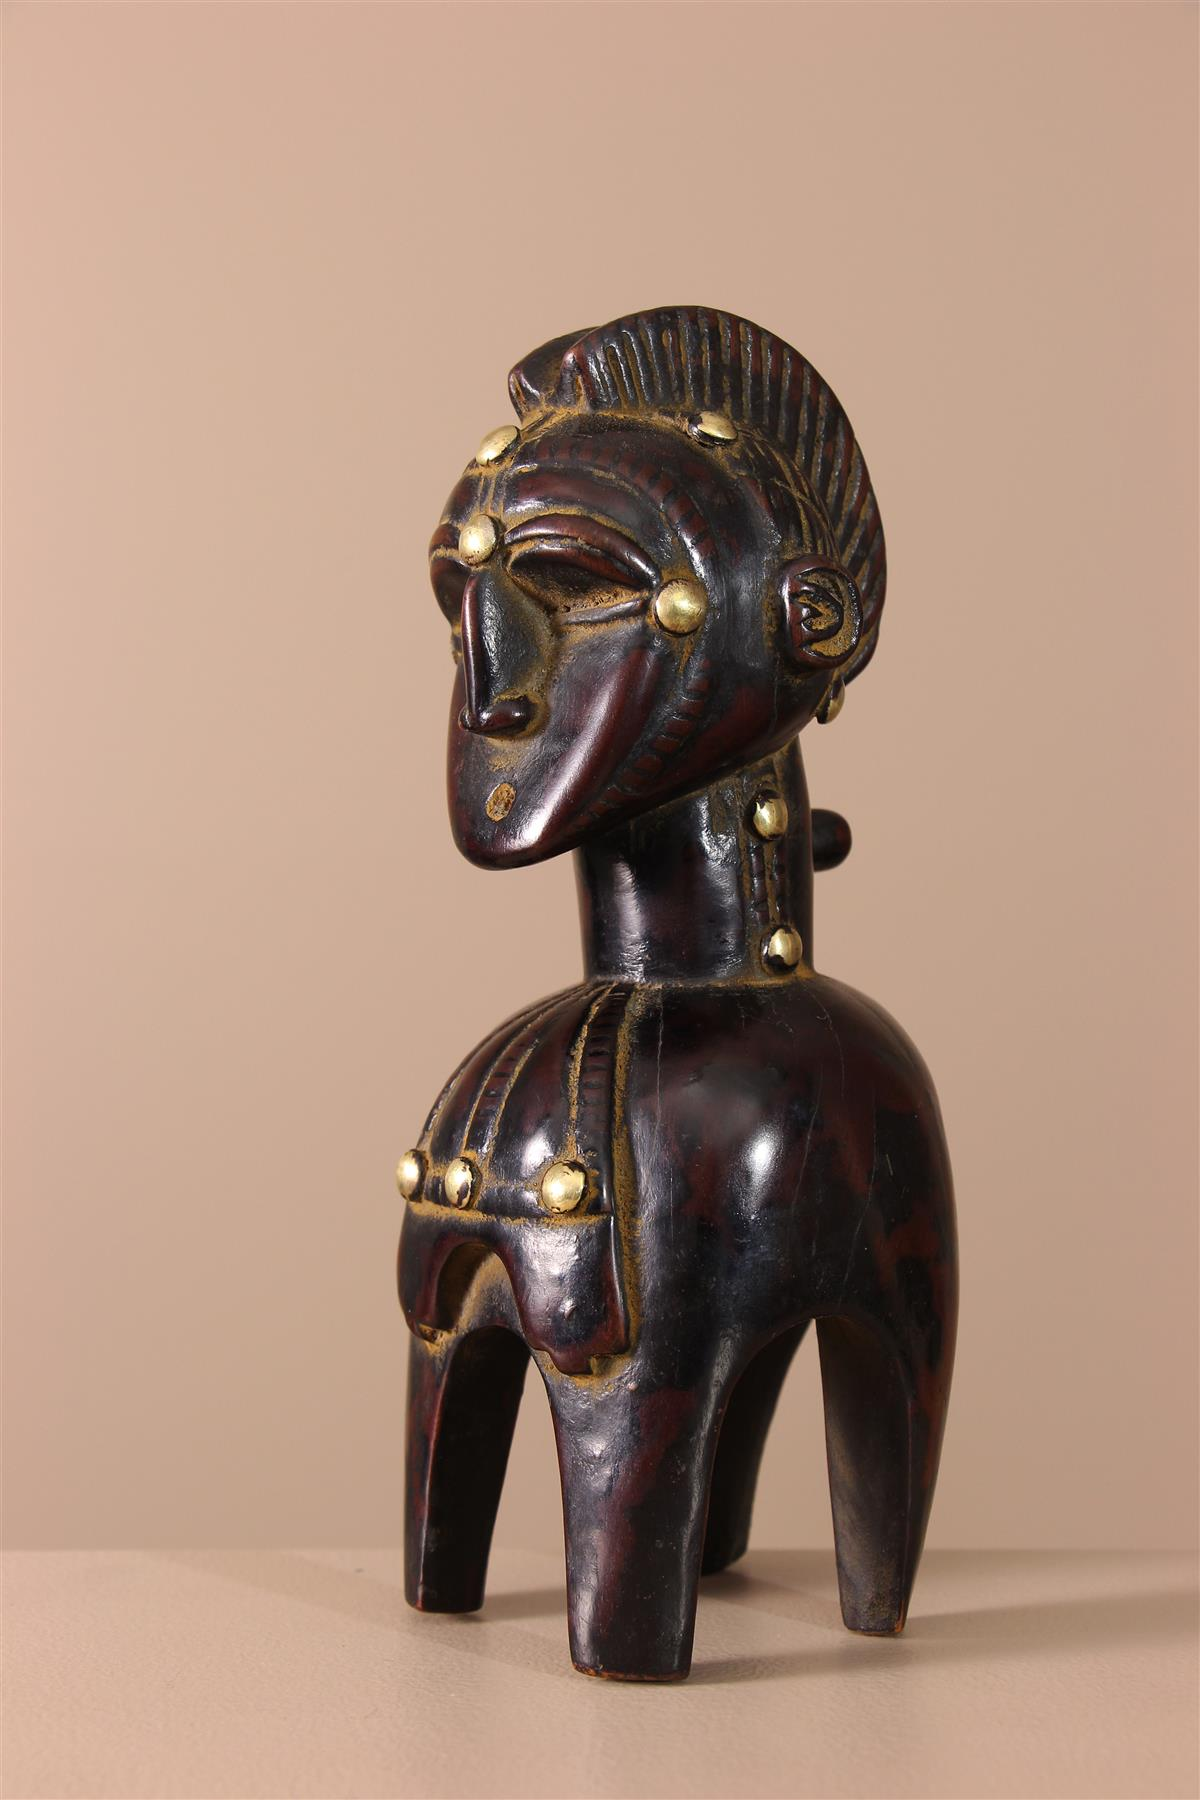 Statuette Baga - Déco africaine - Art africain traditionnel